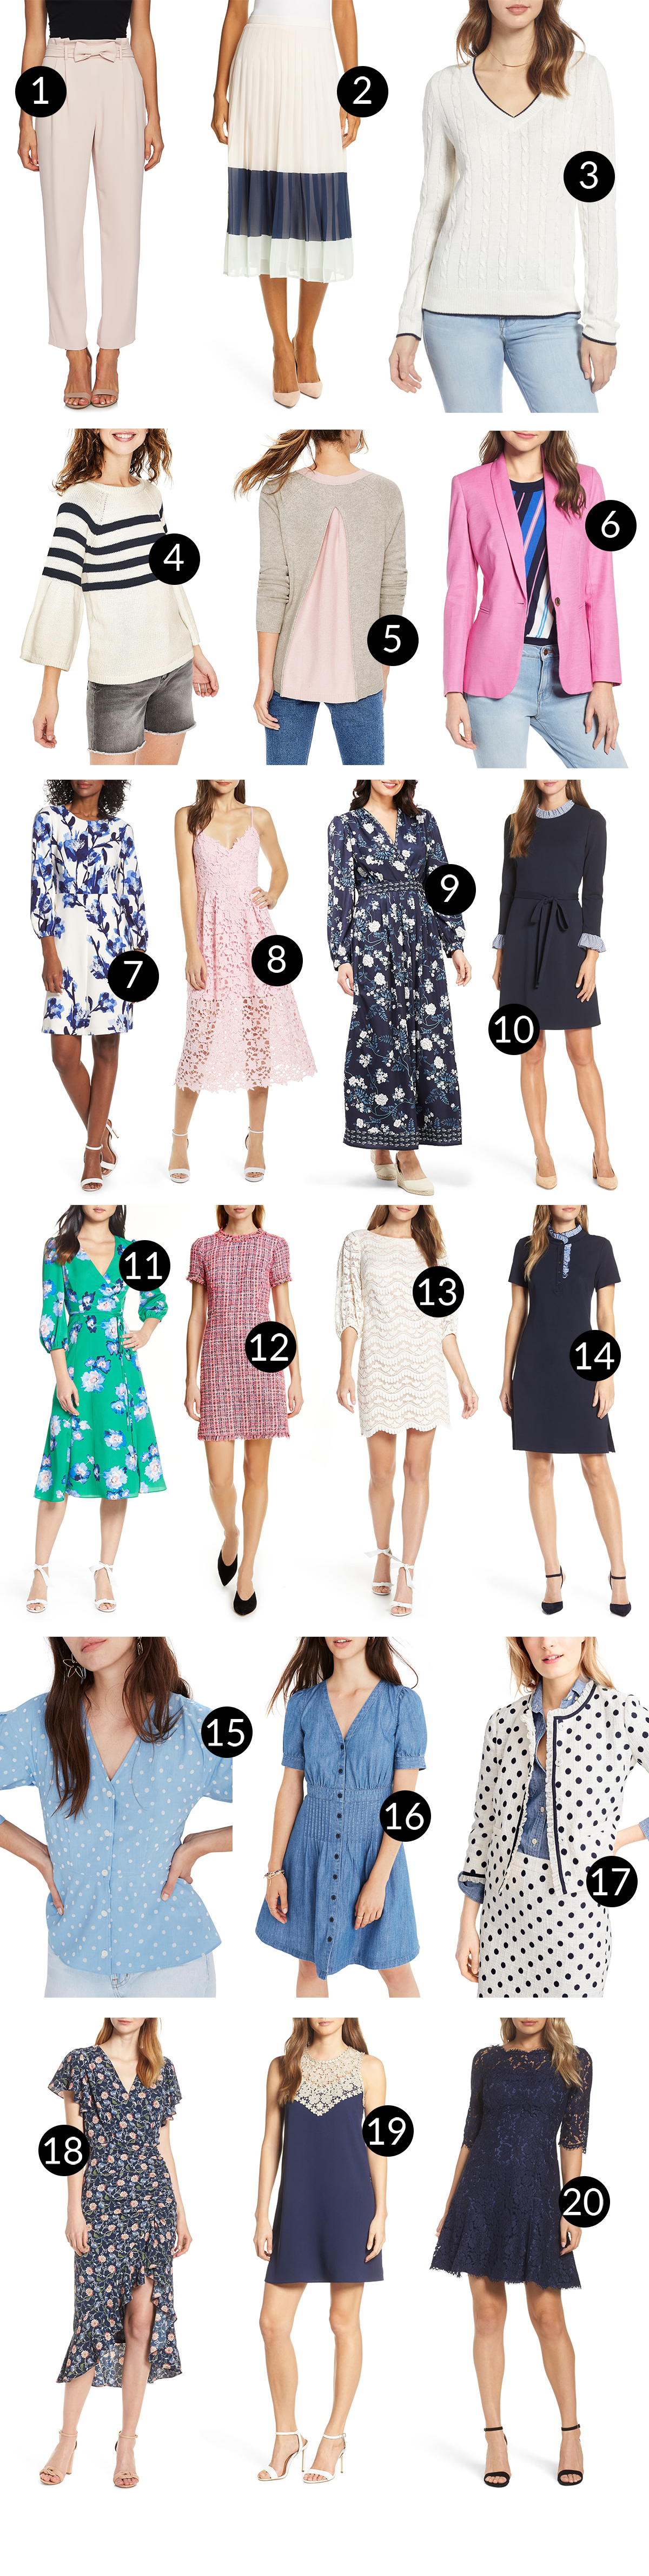 Nordstrom Clothing (Half-Yearly Sale): Insane deals. SO. MANY. MARKDOWNS.